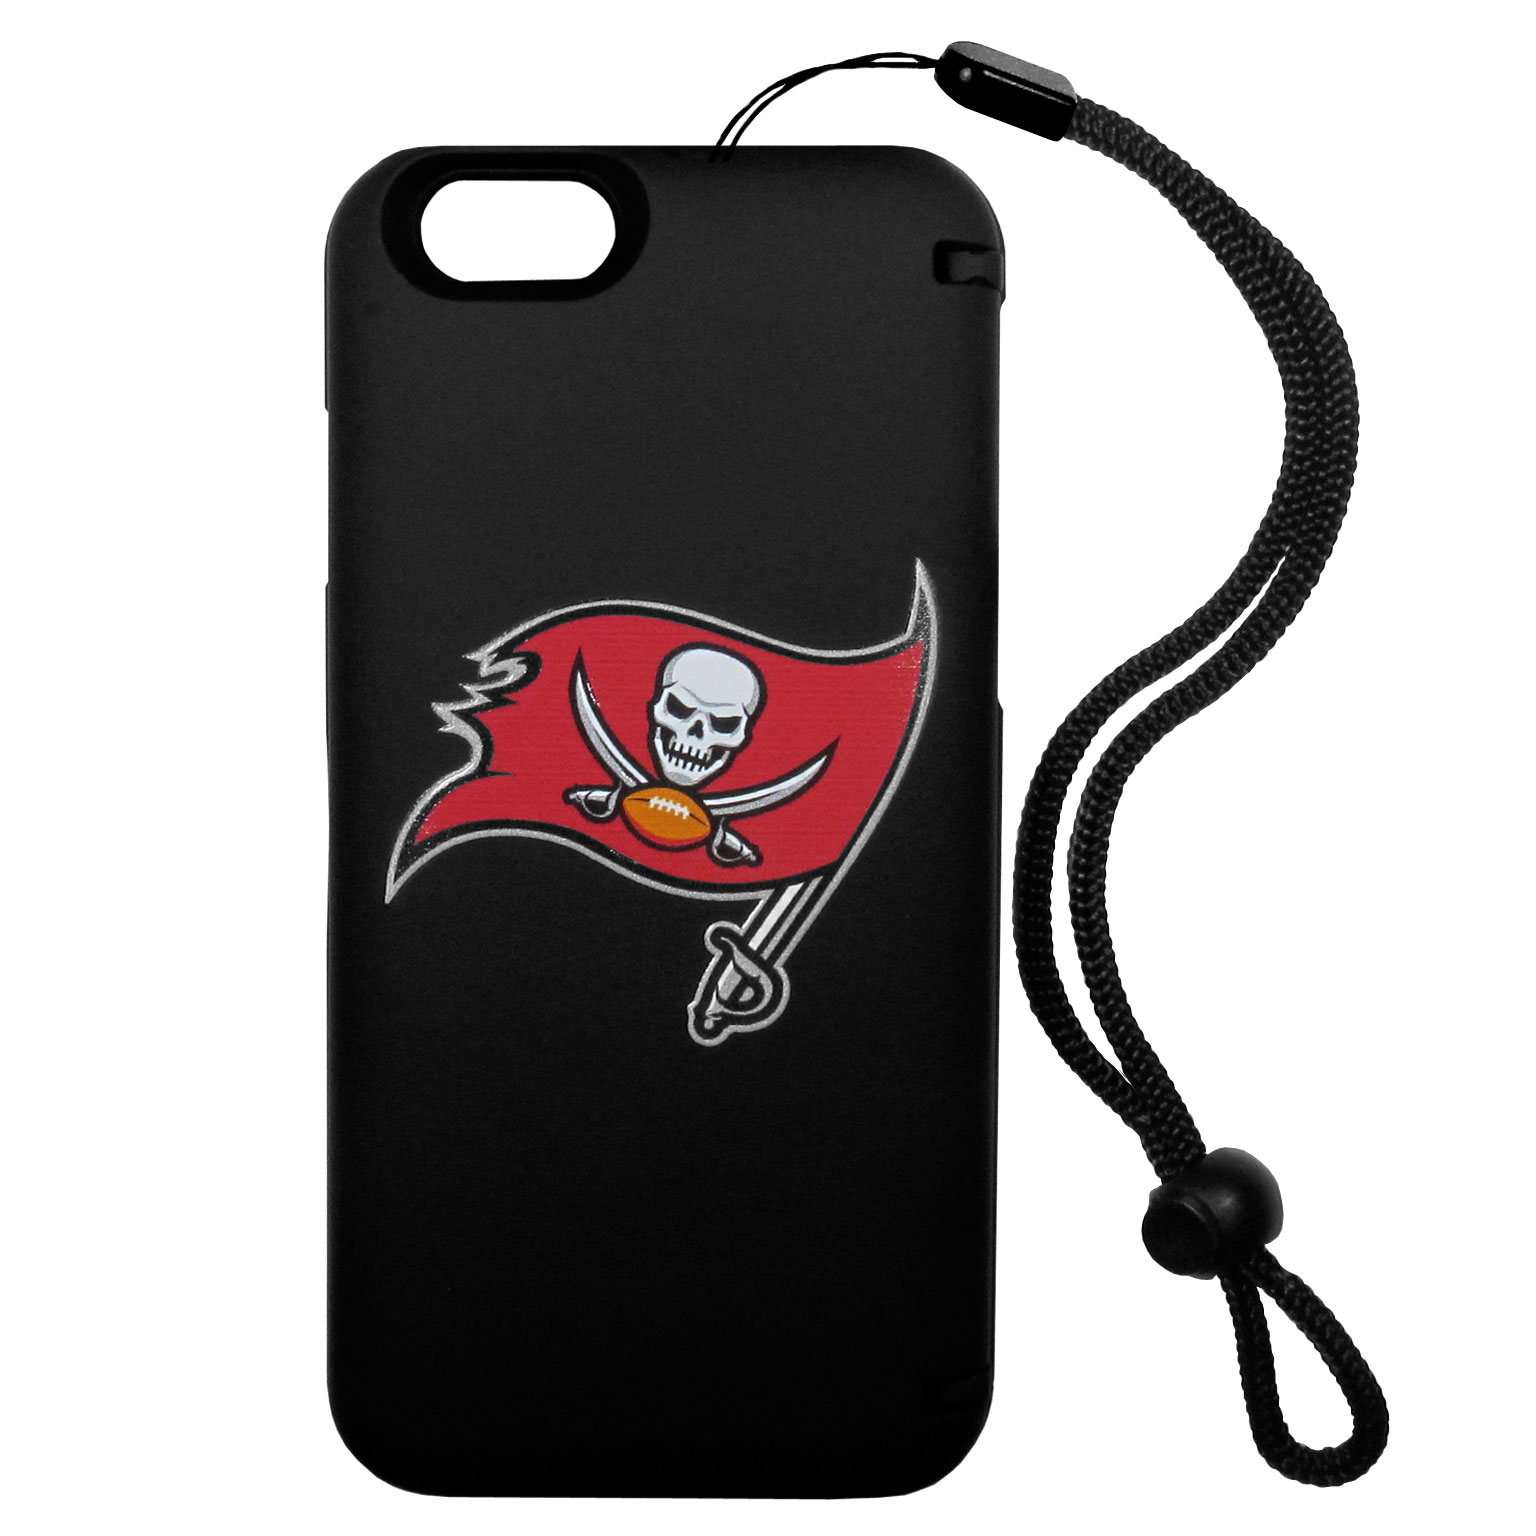 Tampa Bay Buccaneers iPhone 6 Everything Case - This case really does have everything but the kitchen sink! The hidden compartment lets you keep your cards, money and tickets to the big game safe and secure and has a compact mirror so you can make sure your game face is ready to go. It also comes with a kickstand to make chatting and watching videos a breeze. The wrist strap allows you to travel with ease with your everything case. If that's not enough, it also comes with the Tampa Bay Buccaneers logo printed in expert detail on the front.